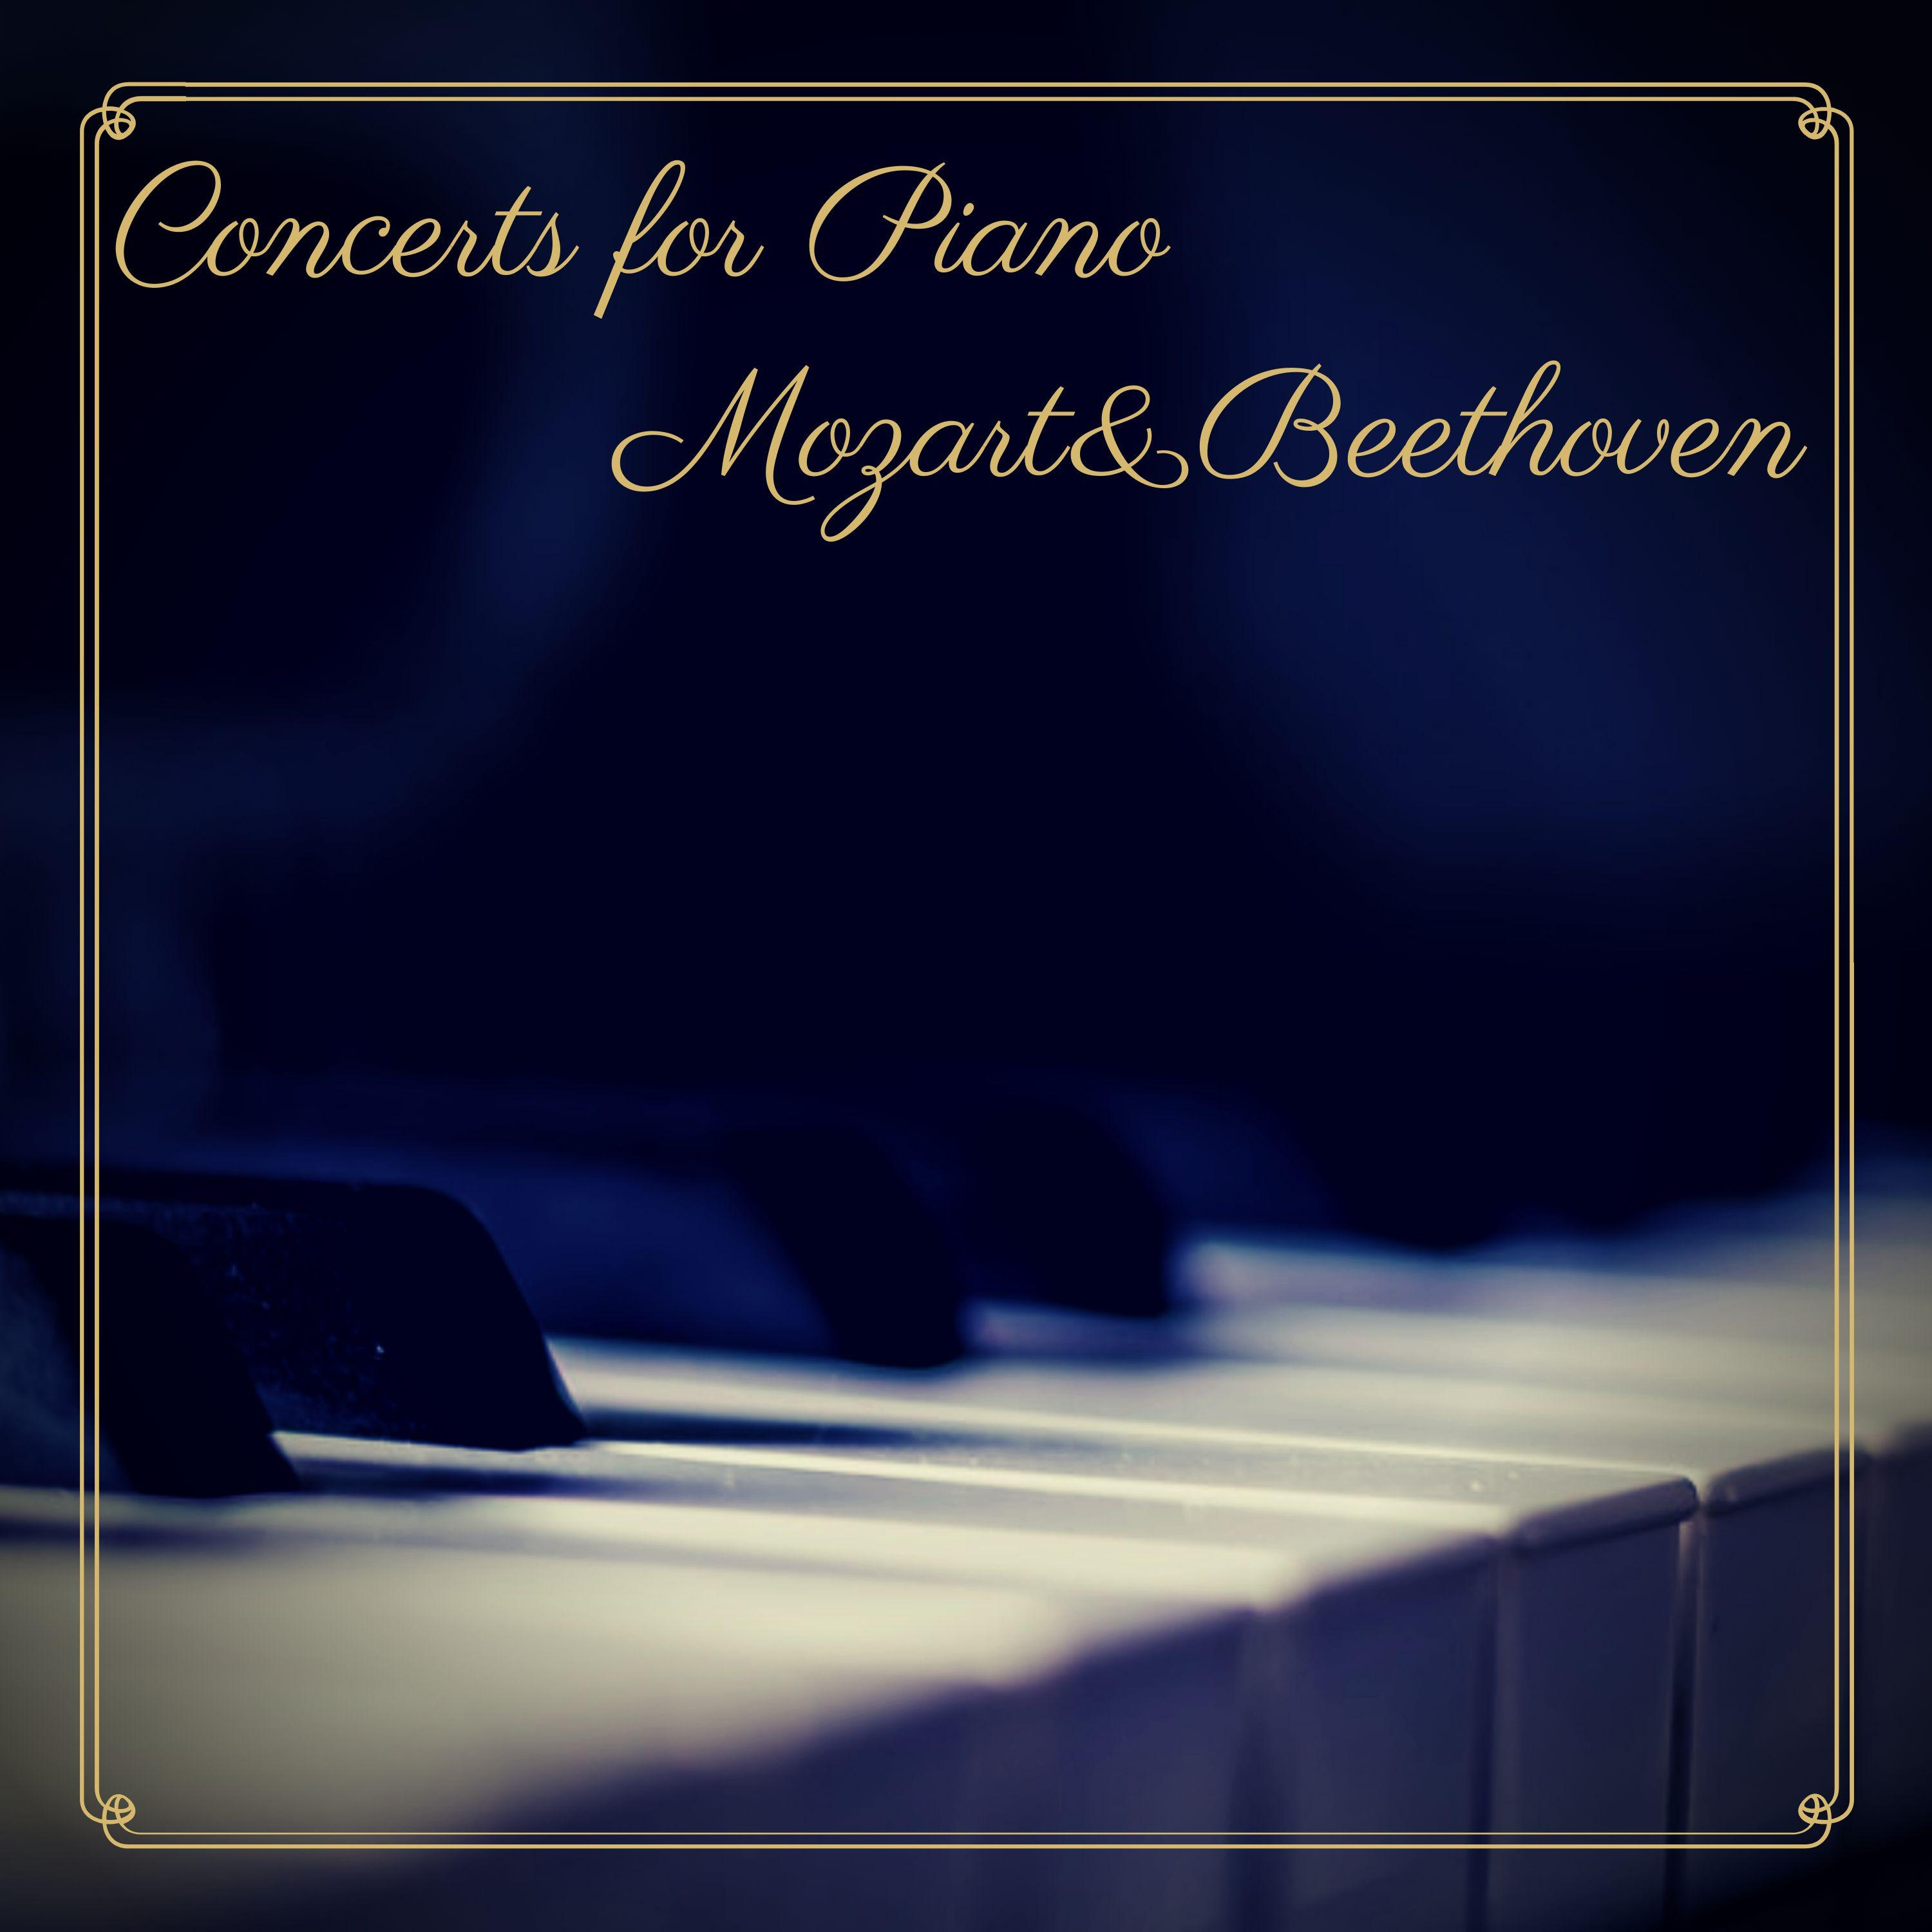 Concerts for Piano - Mozart&Beethoven